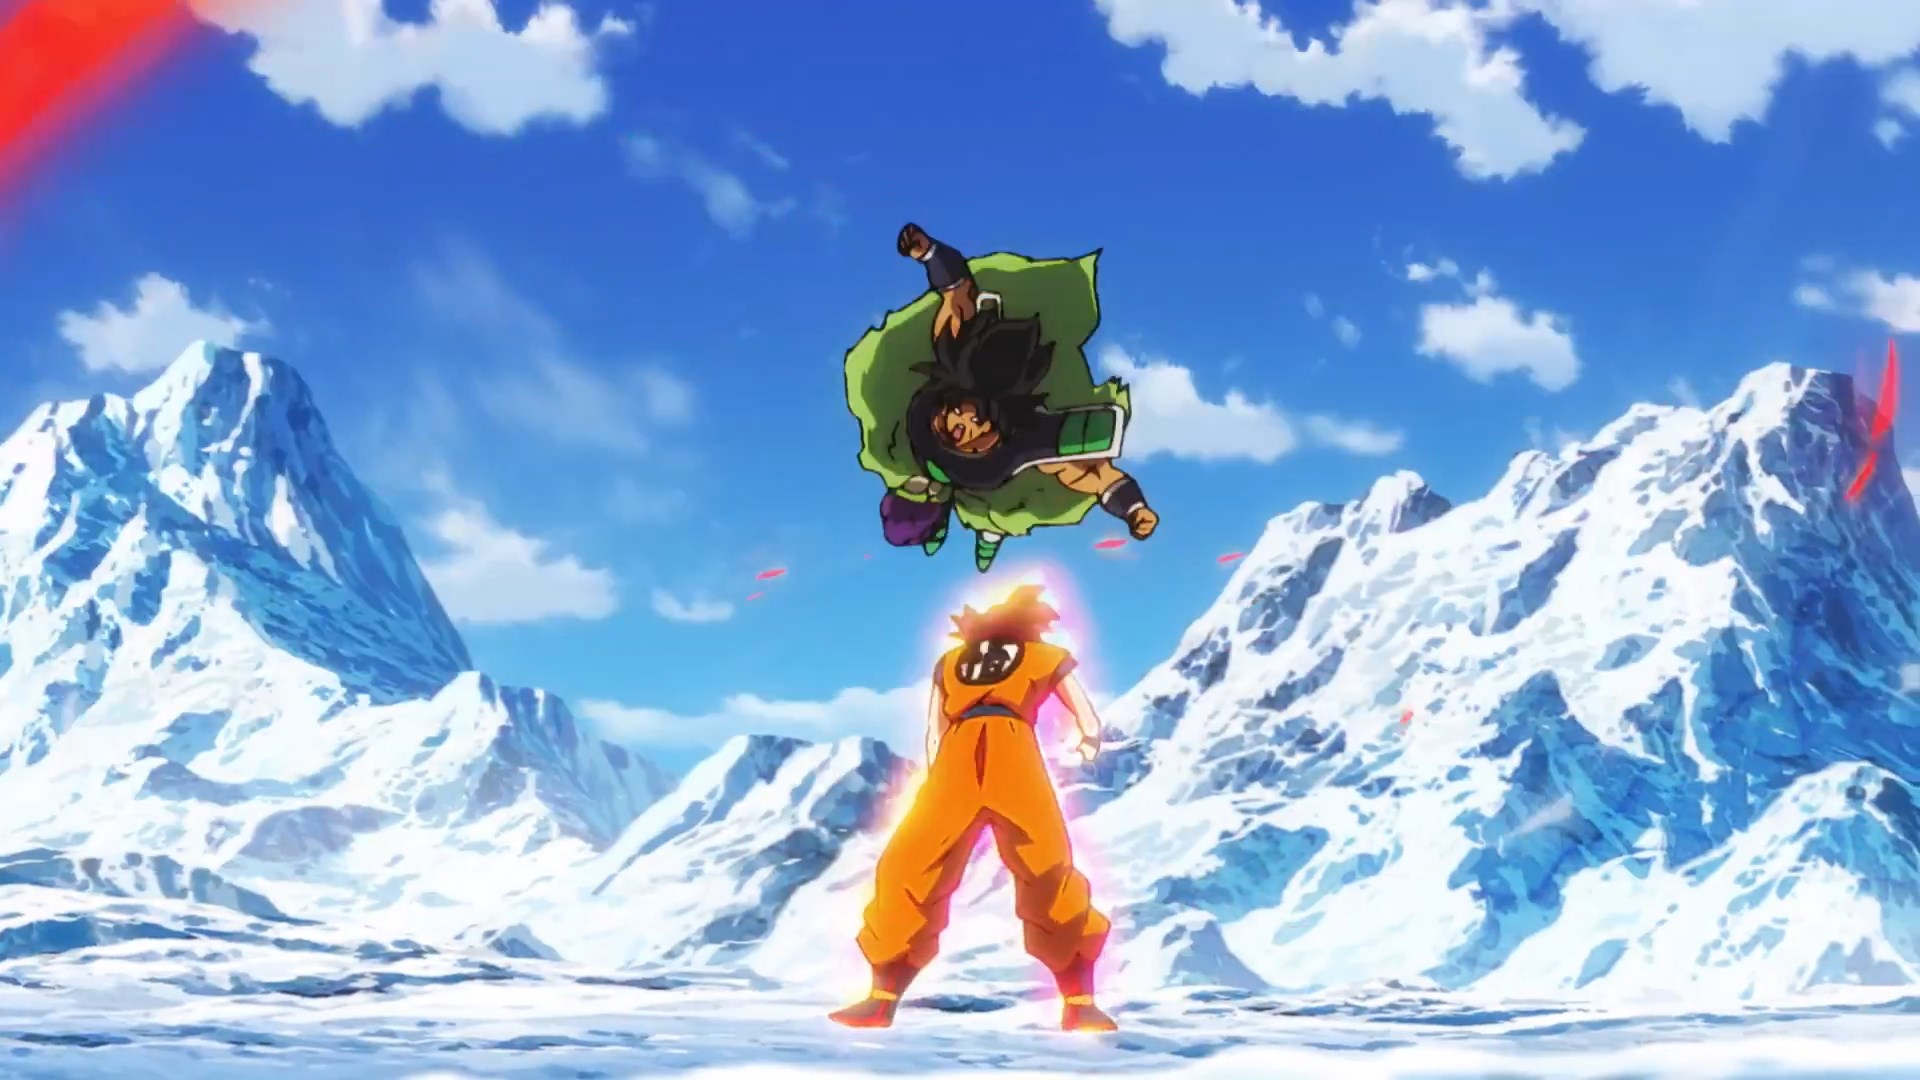 Dragon Ball Super Broly : Goku Super Saiyan God VS Broly